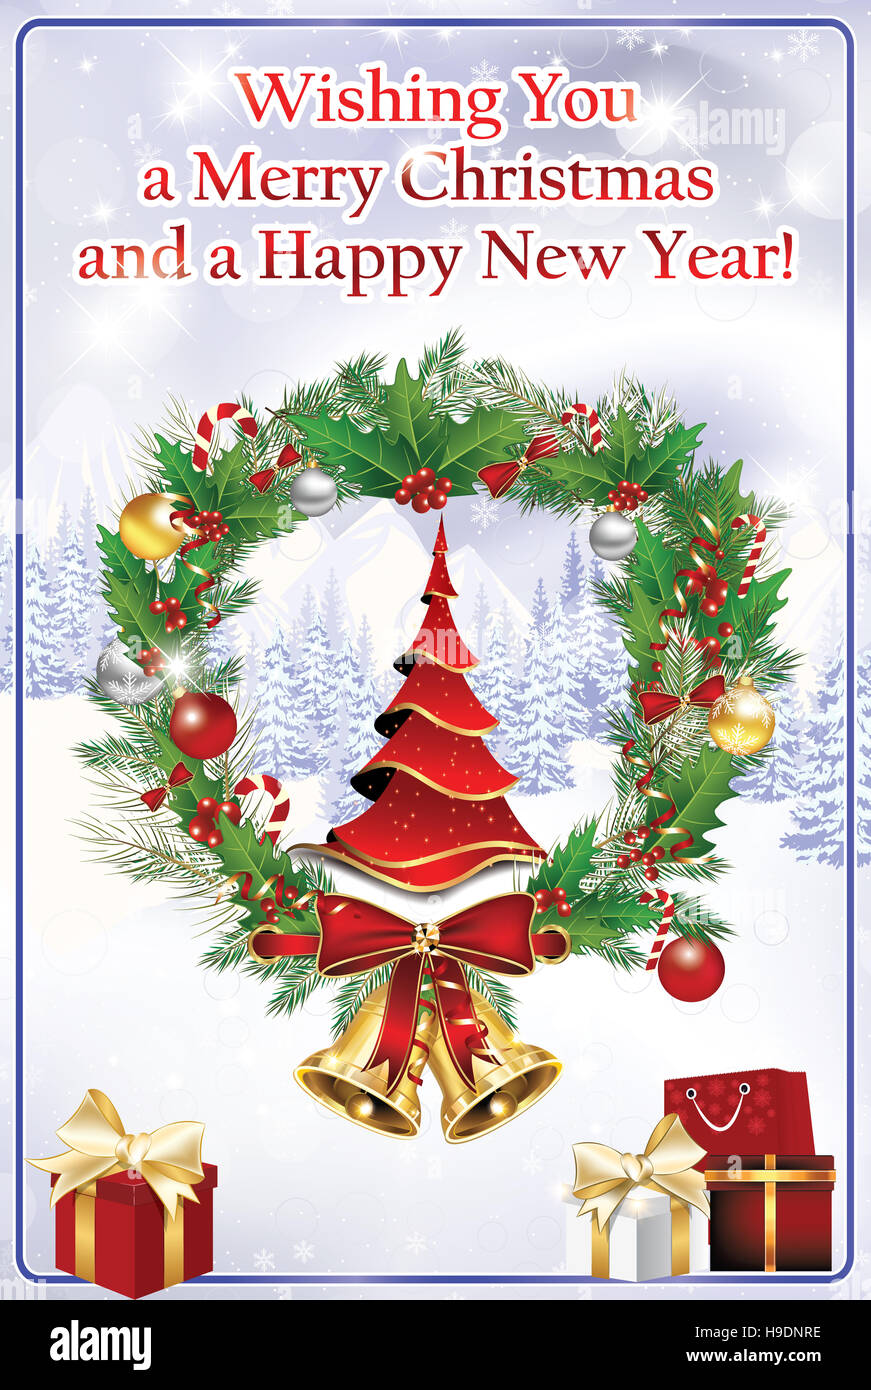 Elegant business winter holiday greeting card we wish you merry elegant business winter holiday greeting card we wish you merry christmas and a happy new year contains christmas baubles wre m4hsunfo